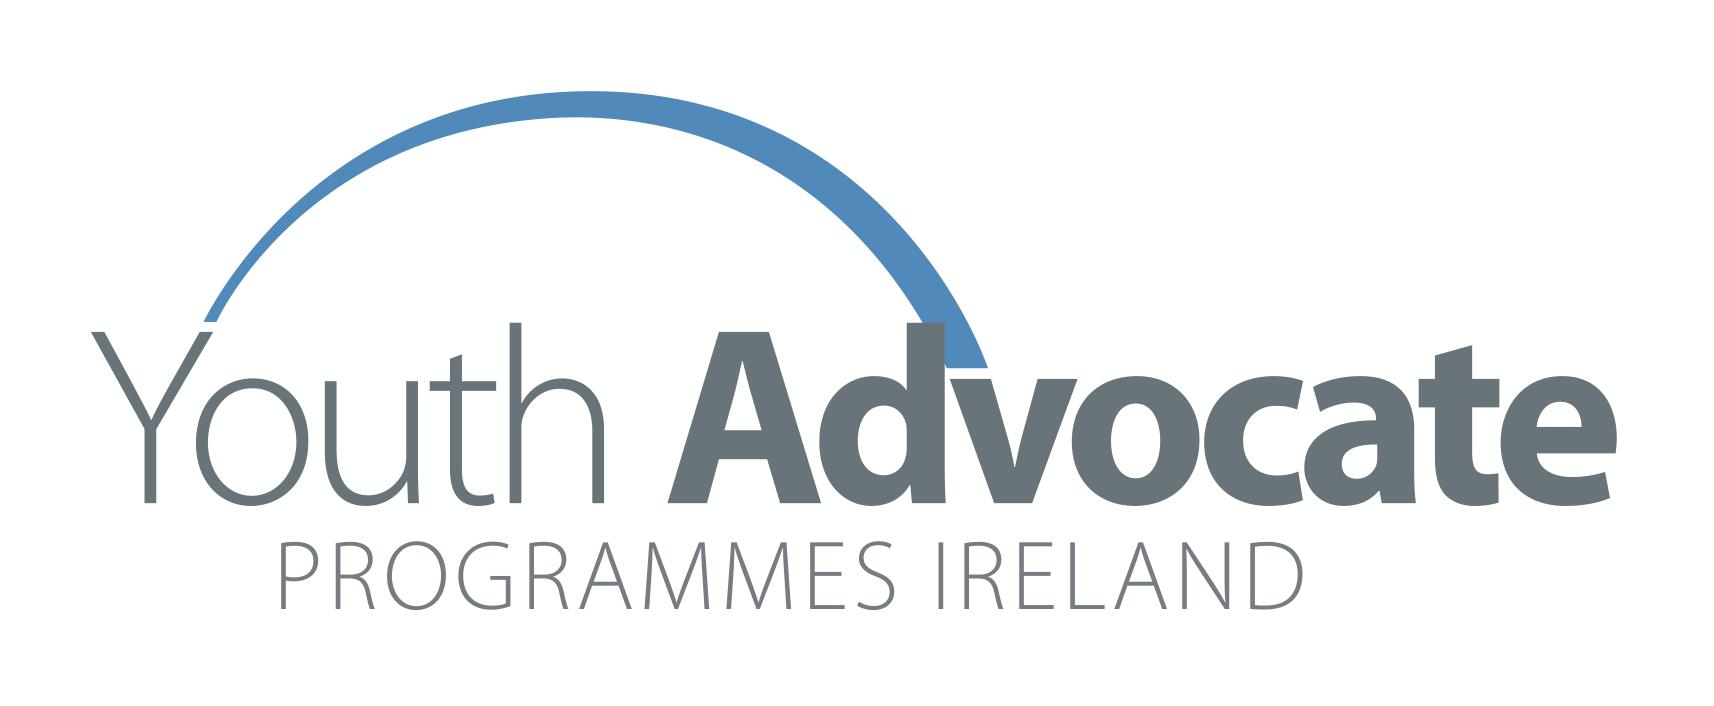 Youth Advocate Programmes Ireland